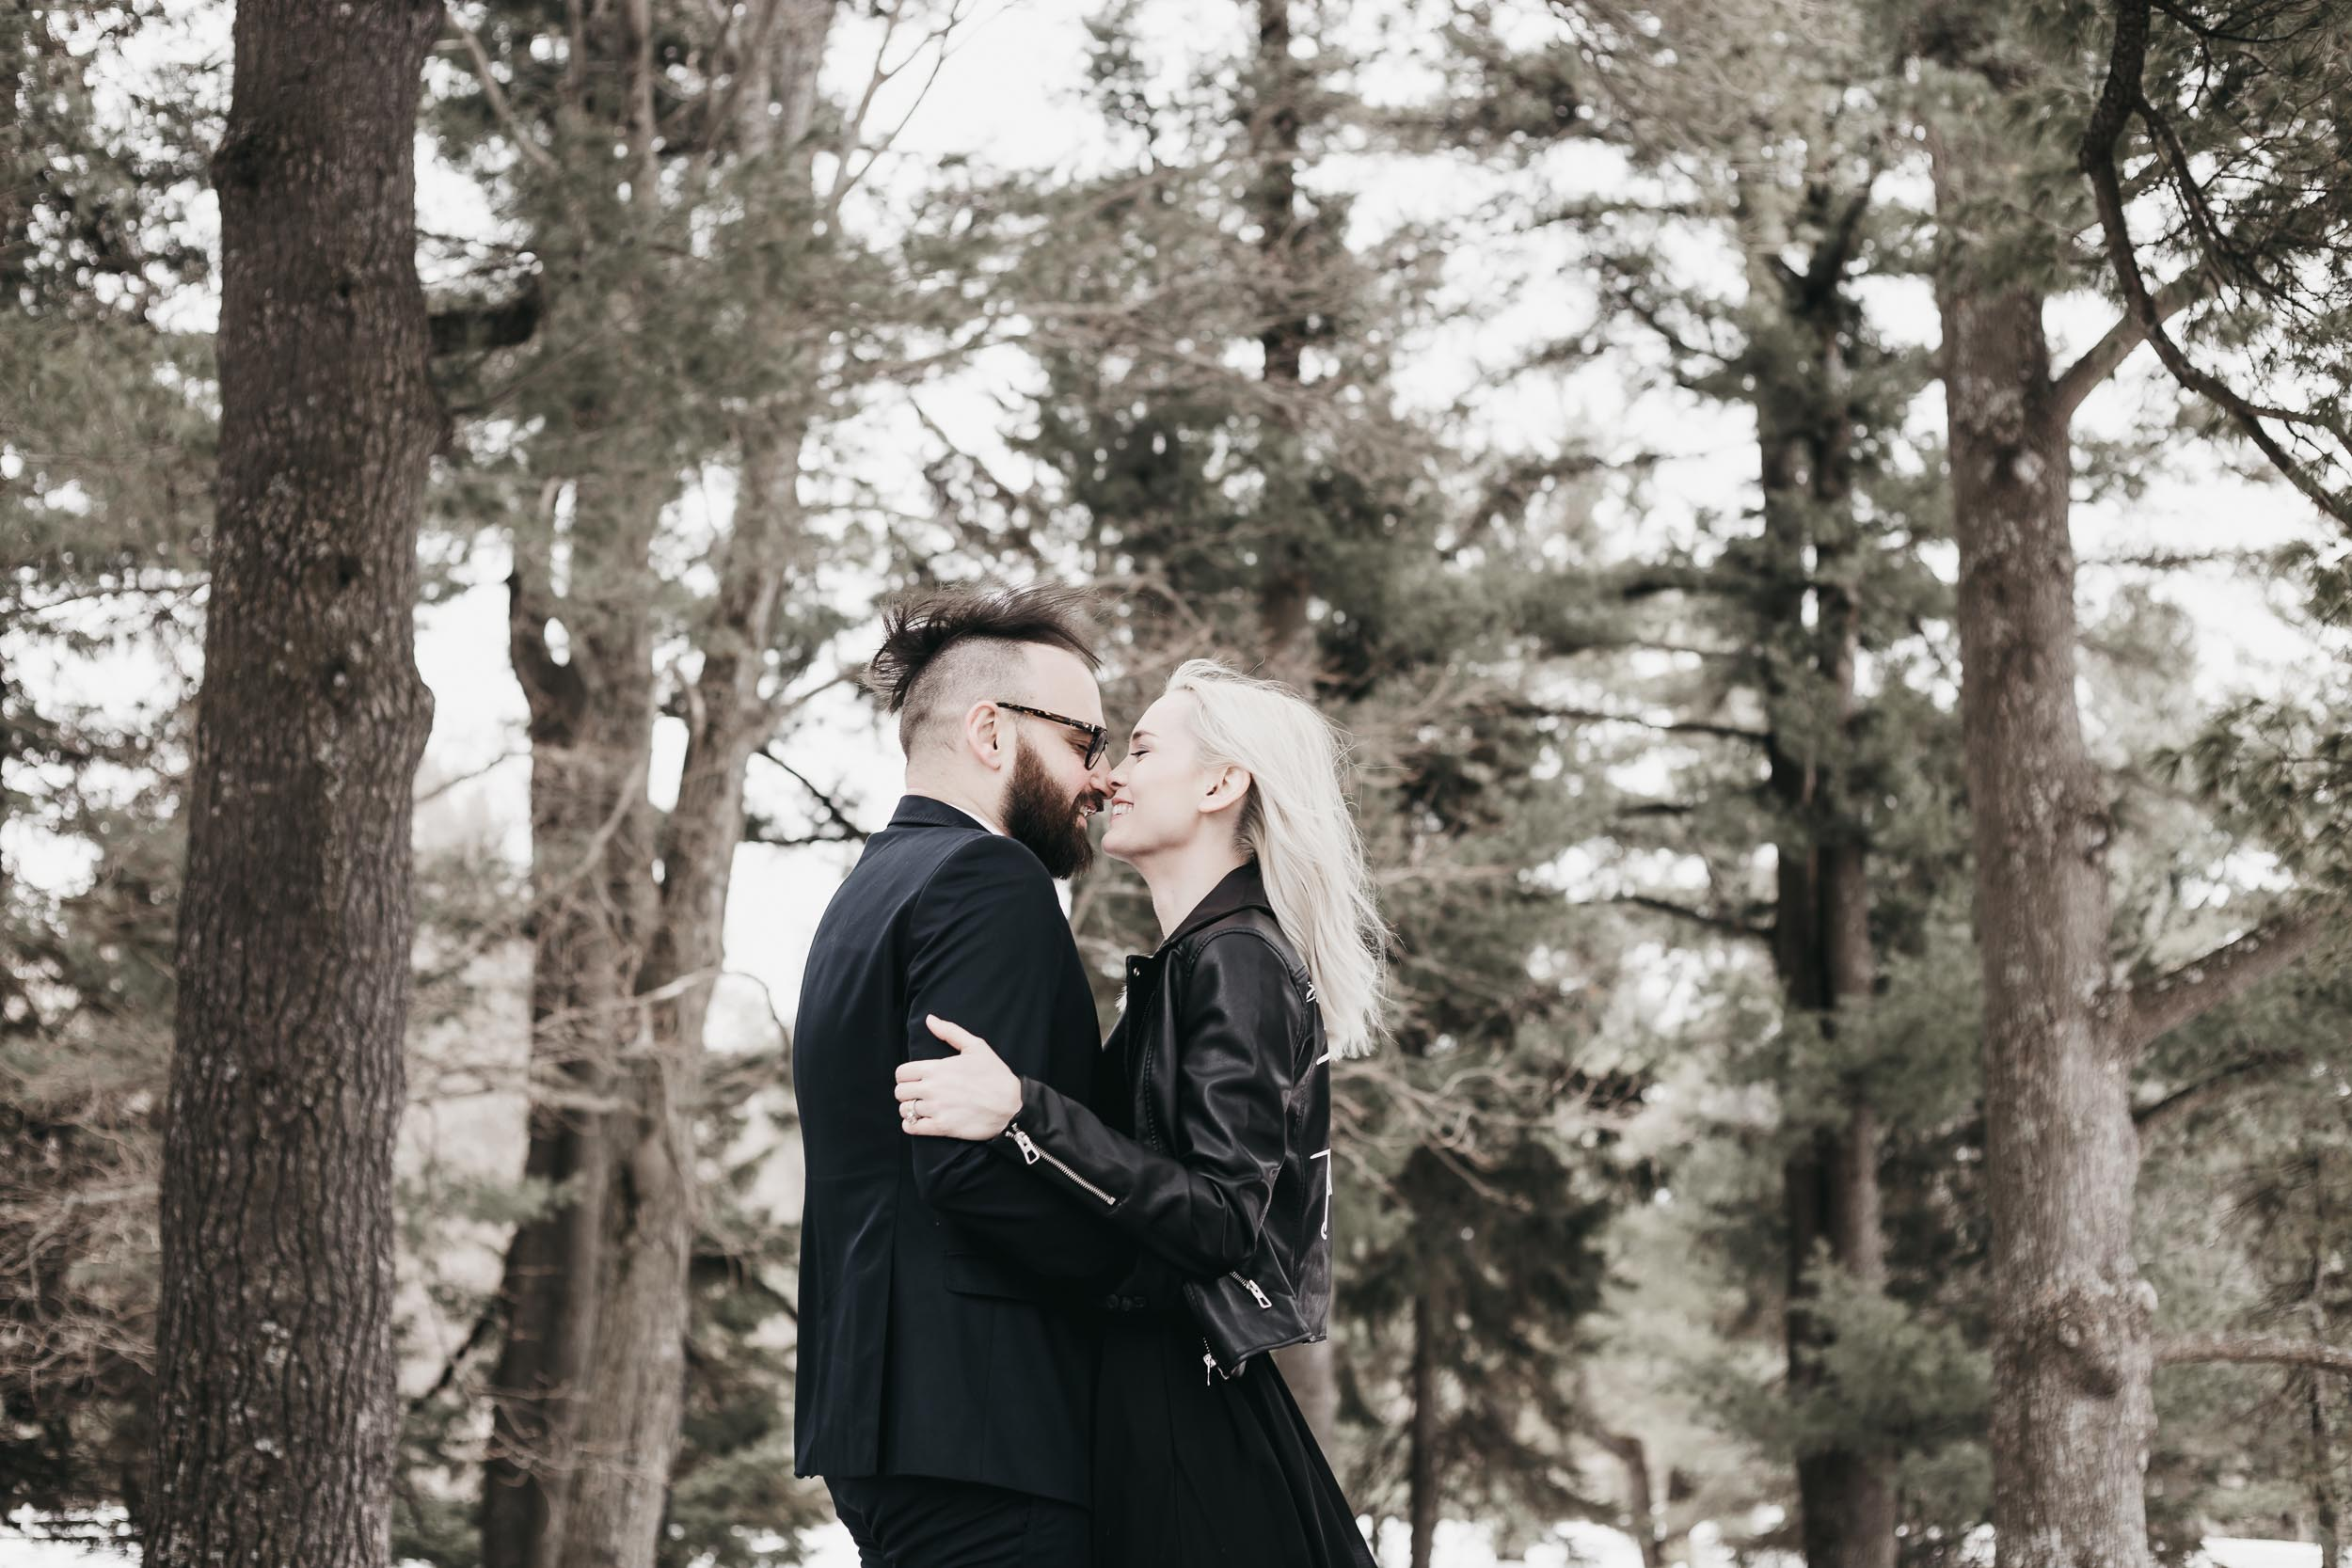 Ottawa-Elopement-Engagement-Photographer-169.jpg